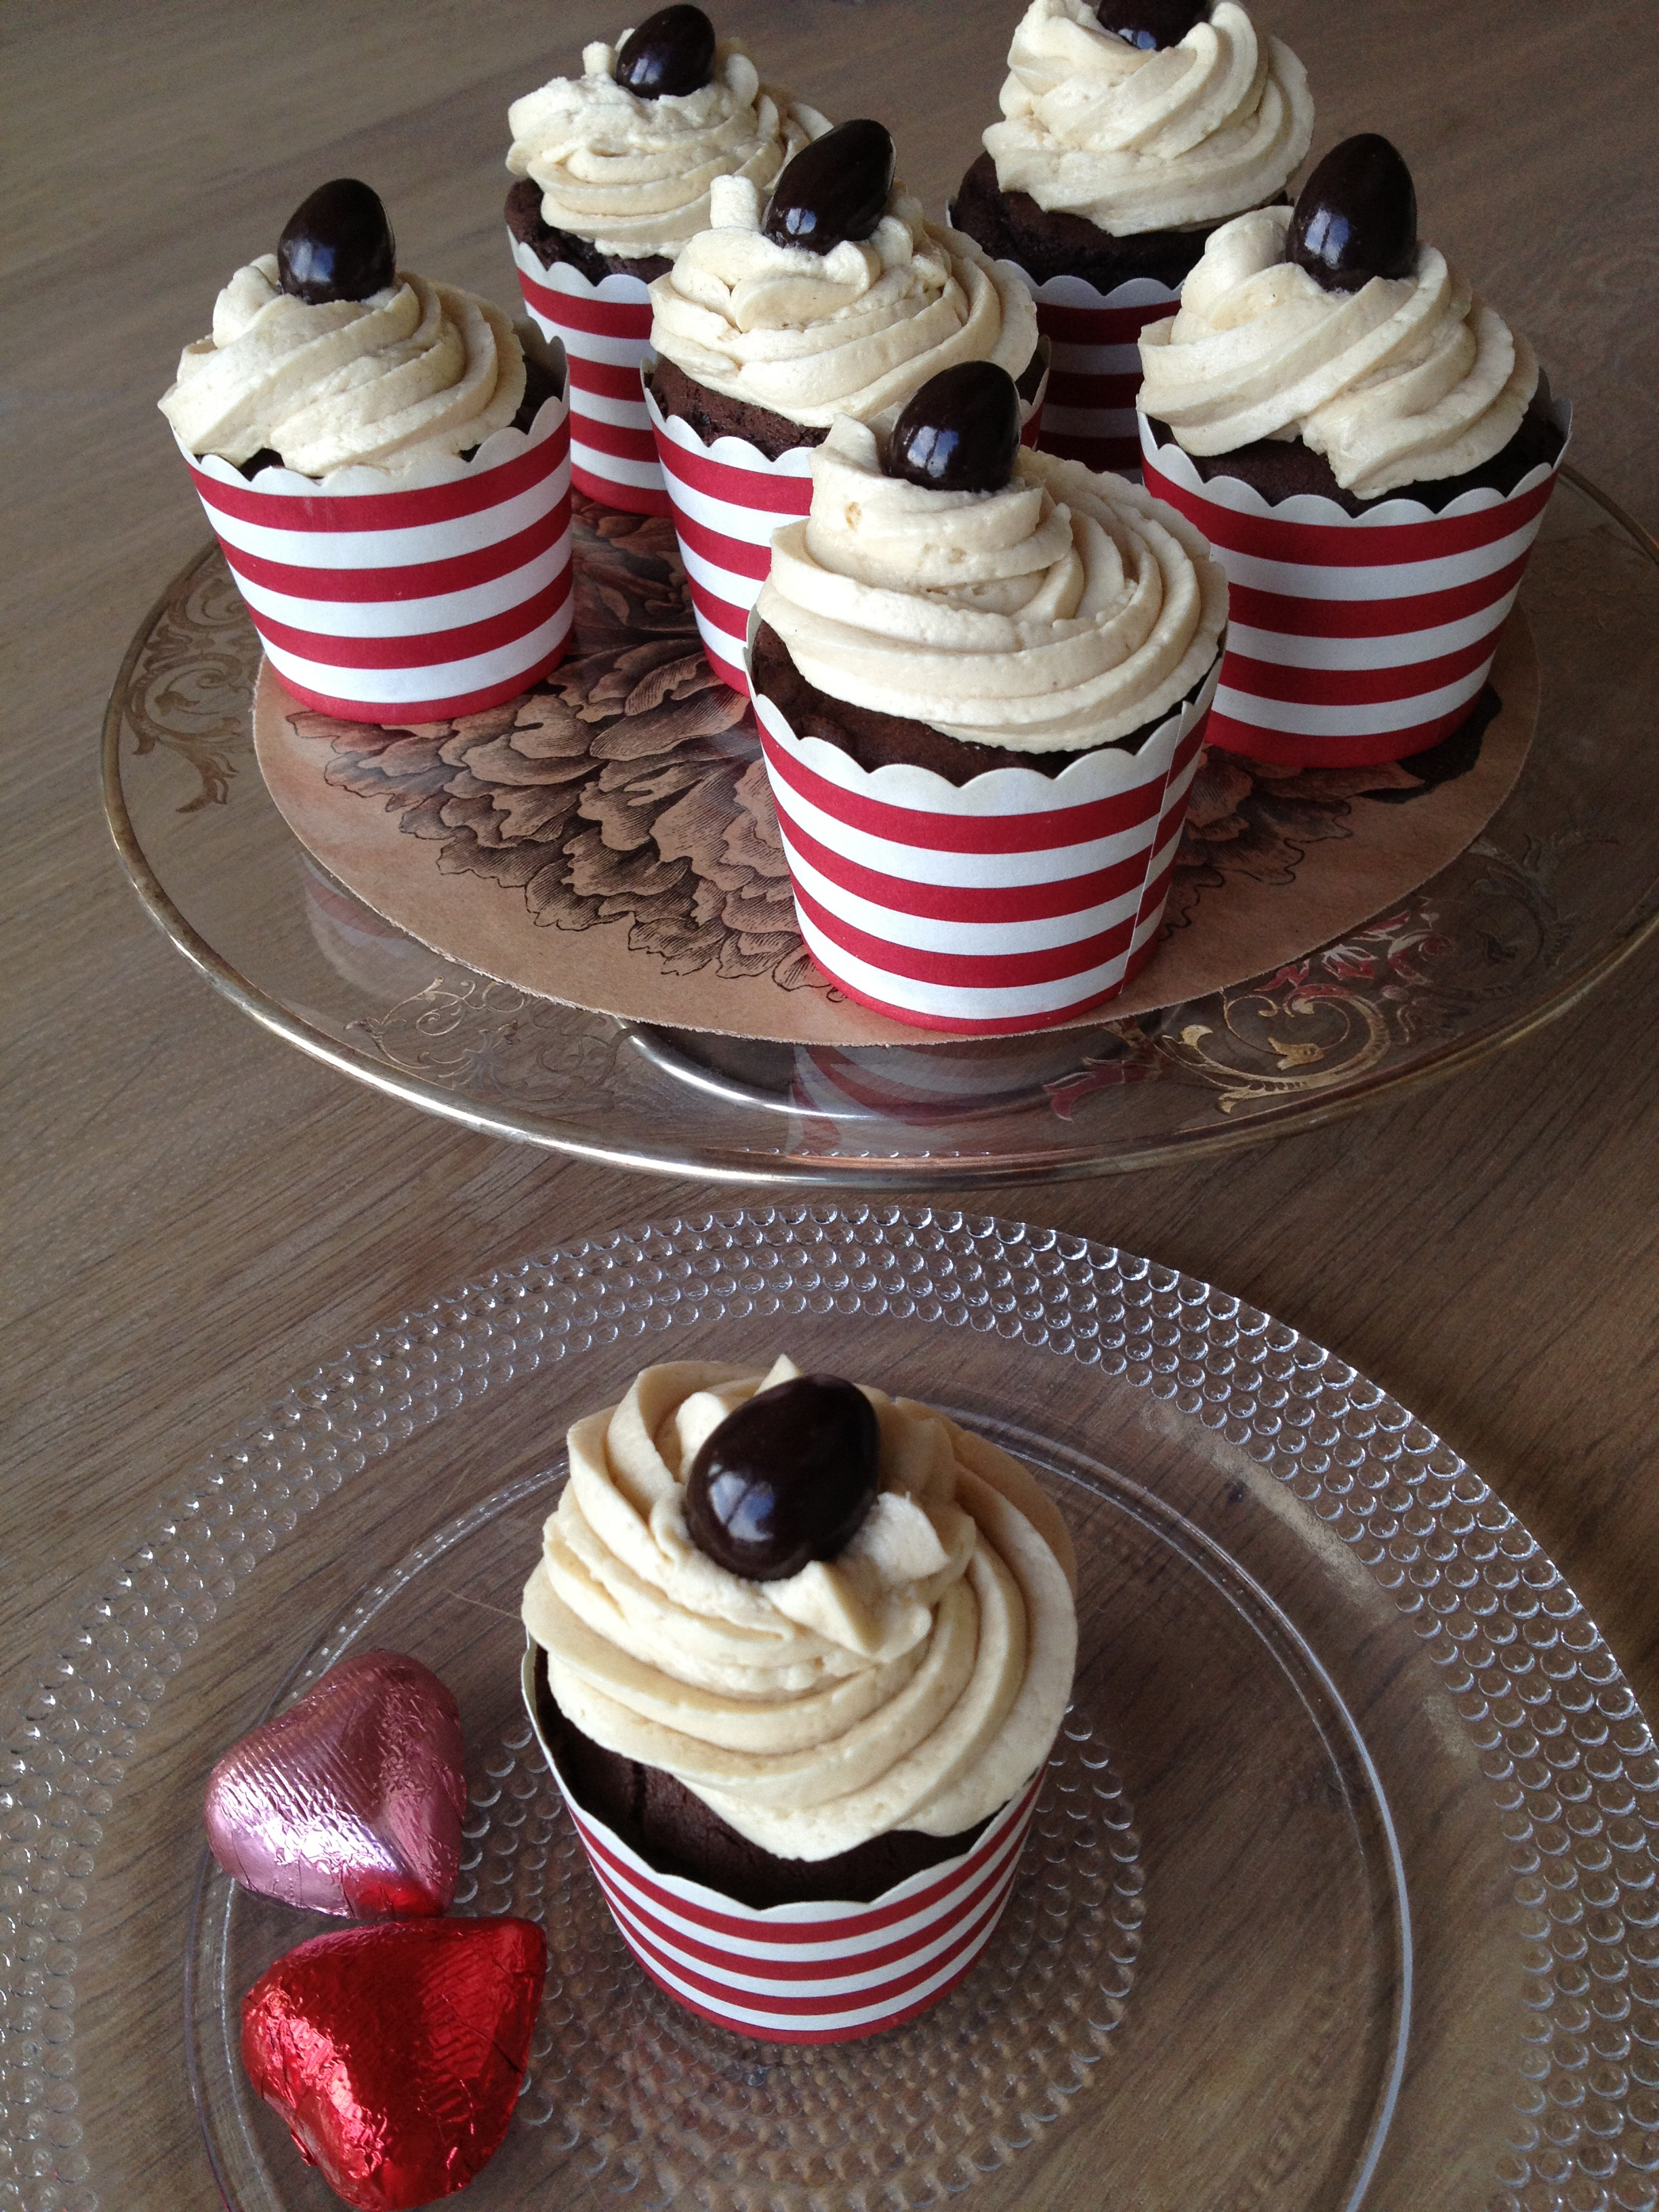 Chocolate Cupcakes with Espresso Buttercream Icing | Gluten Free Gus